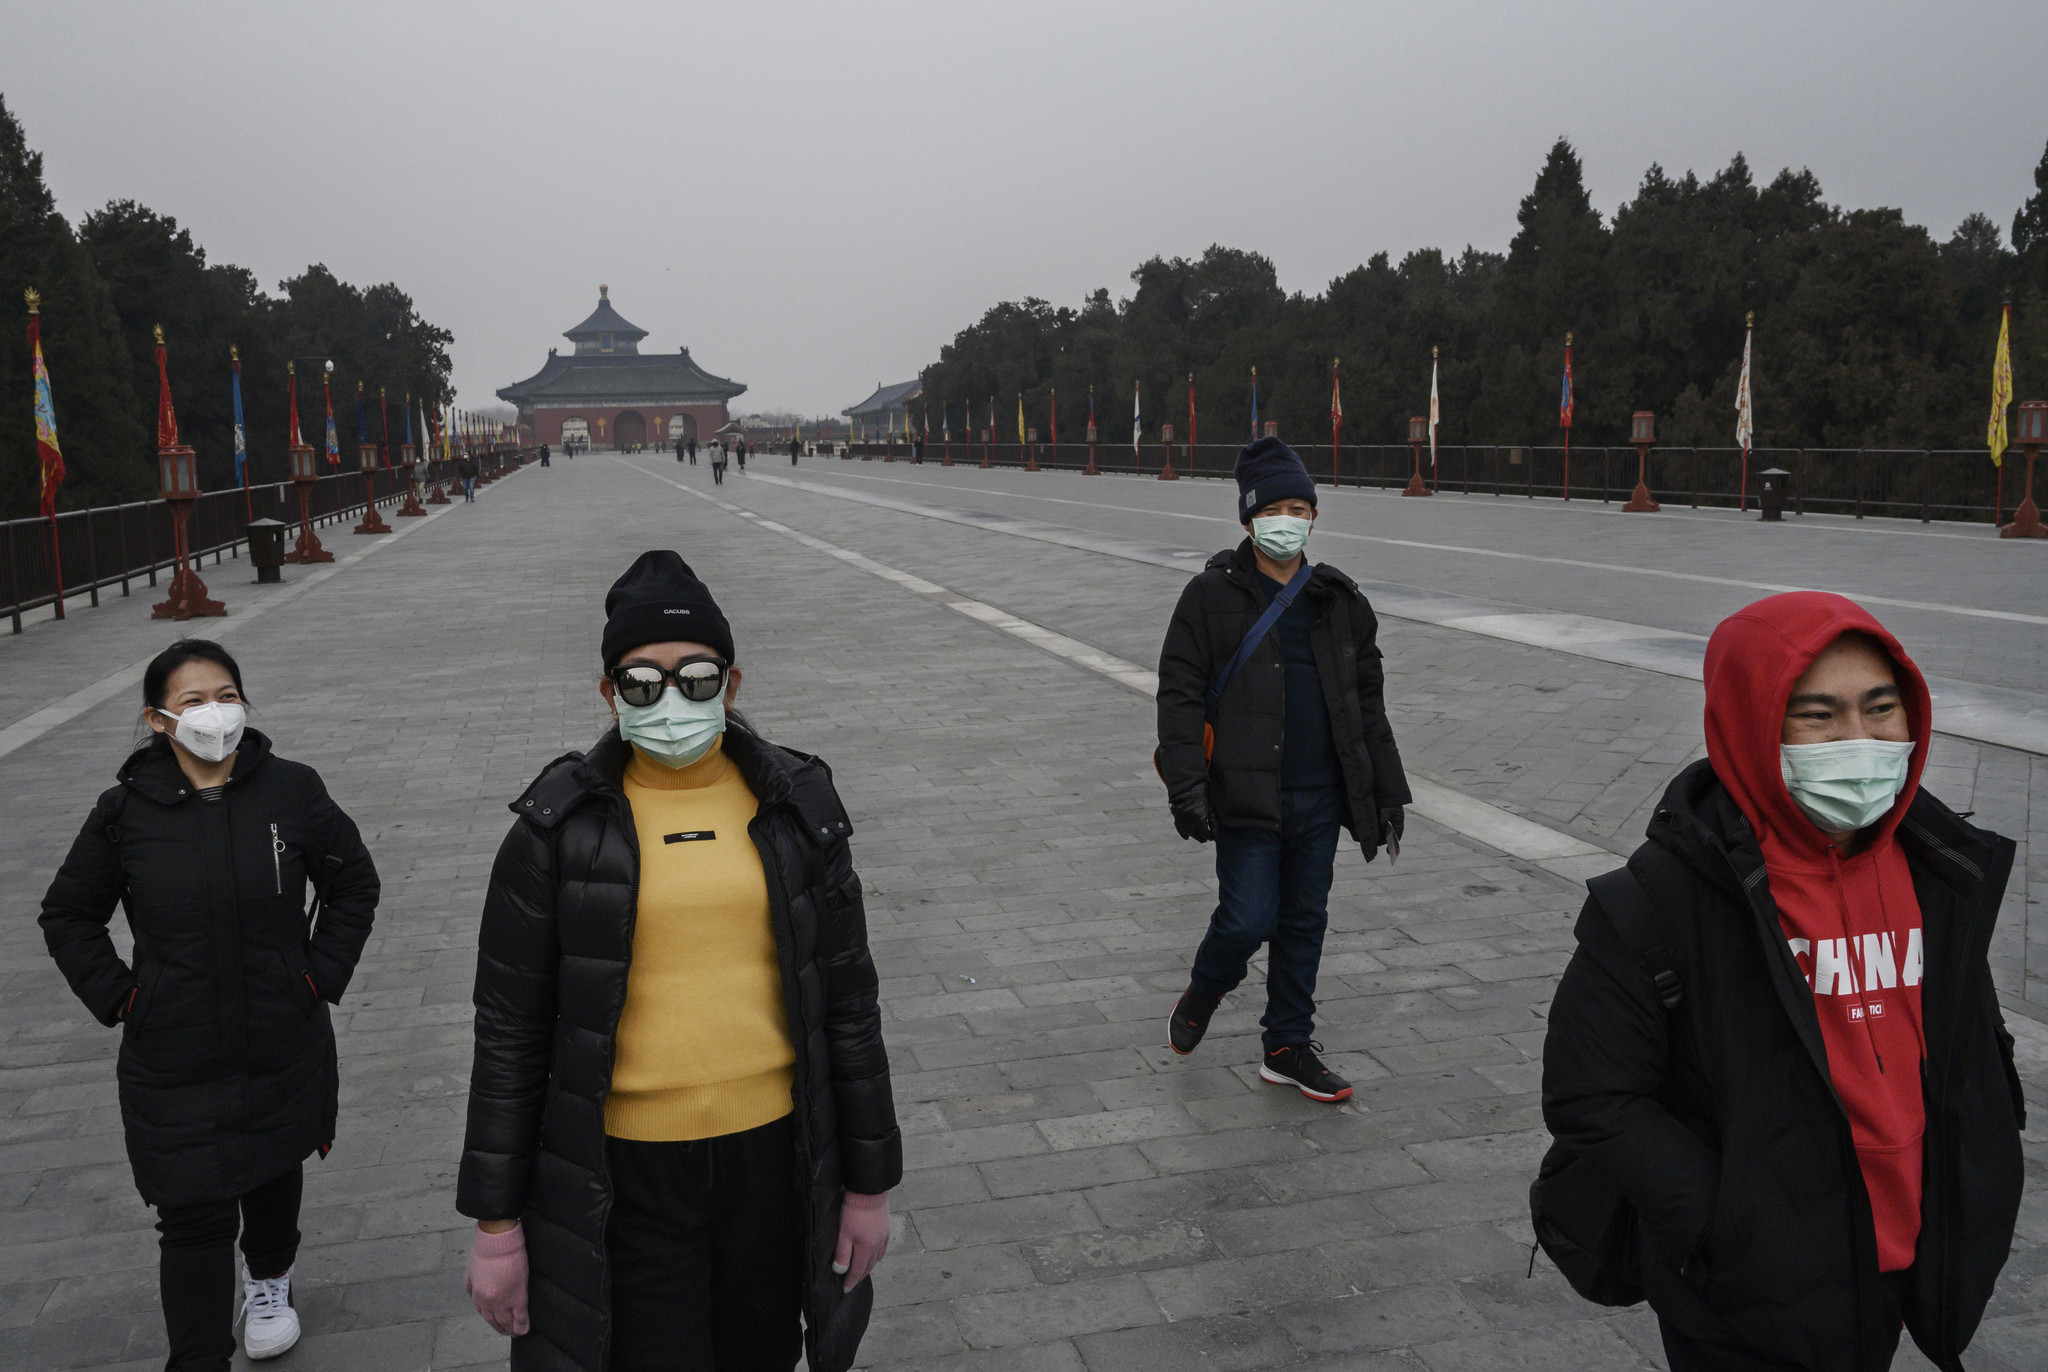 Some American citizens in Wuhan to escape coronavirus on flight, others will stick it out in city